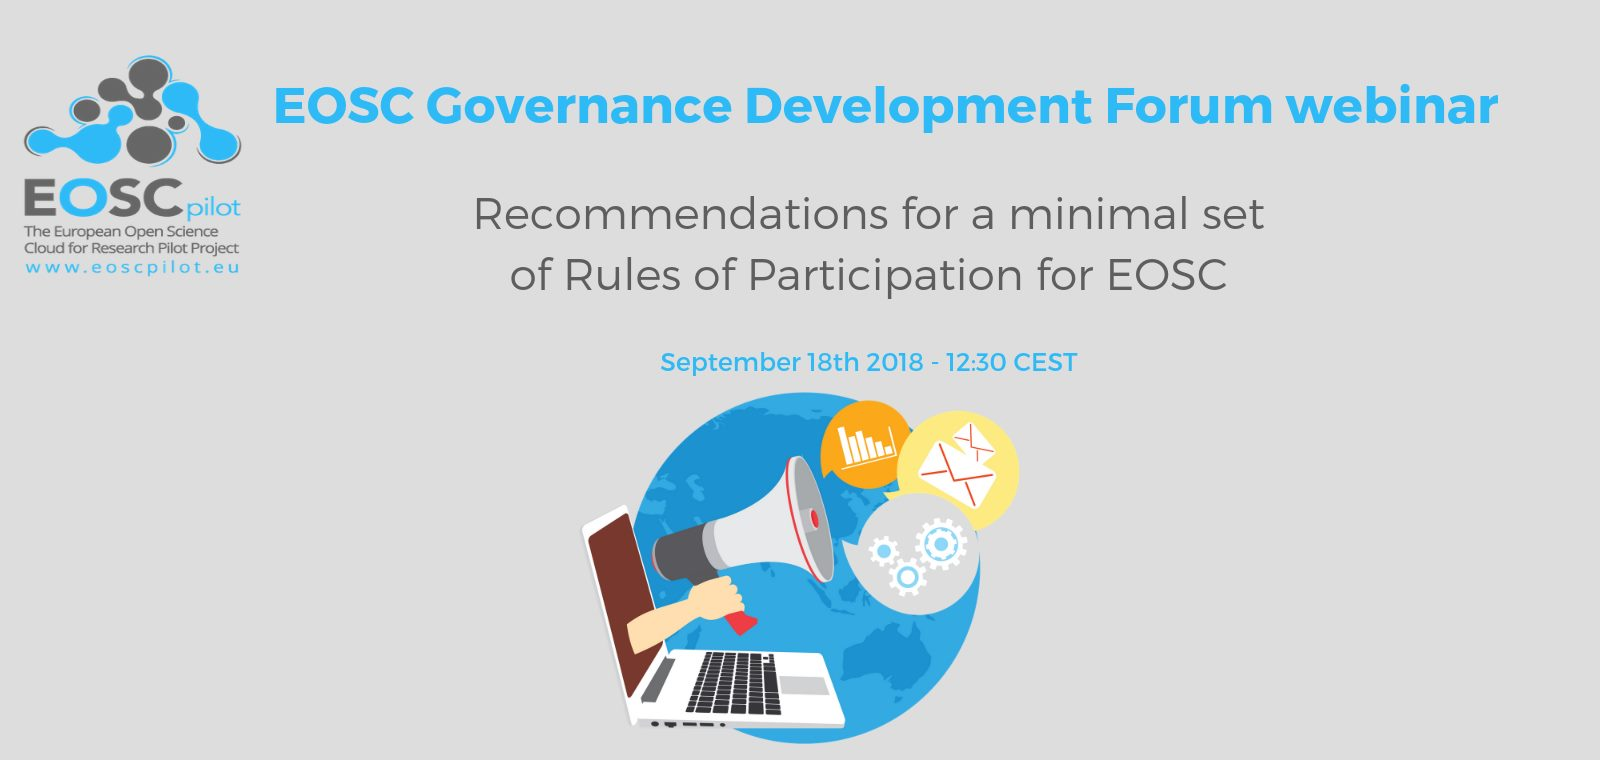 EOSC Governance Development Forum webinar – 18th September 2018